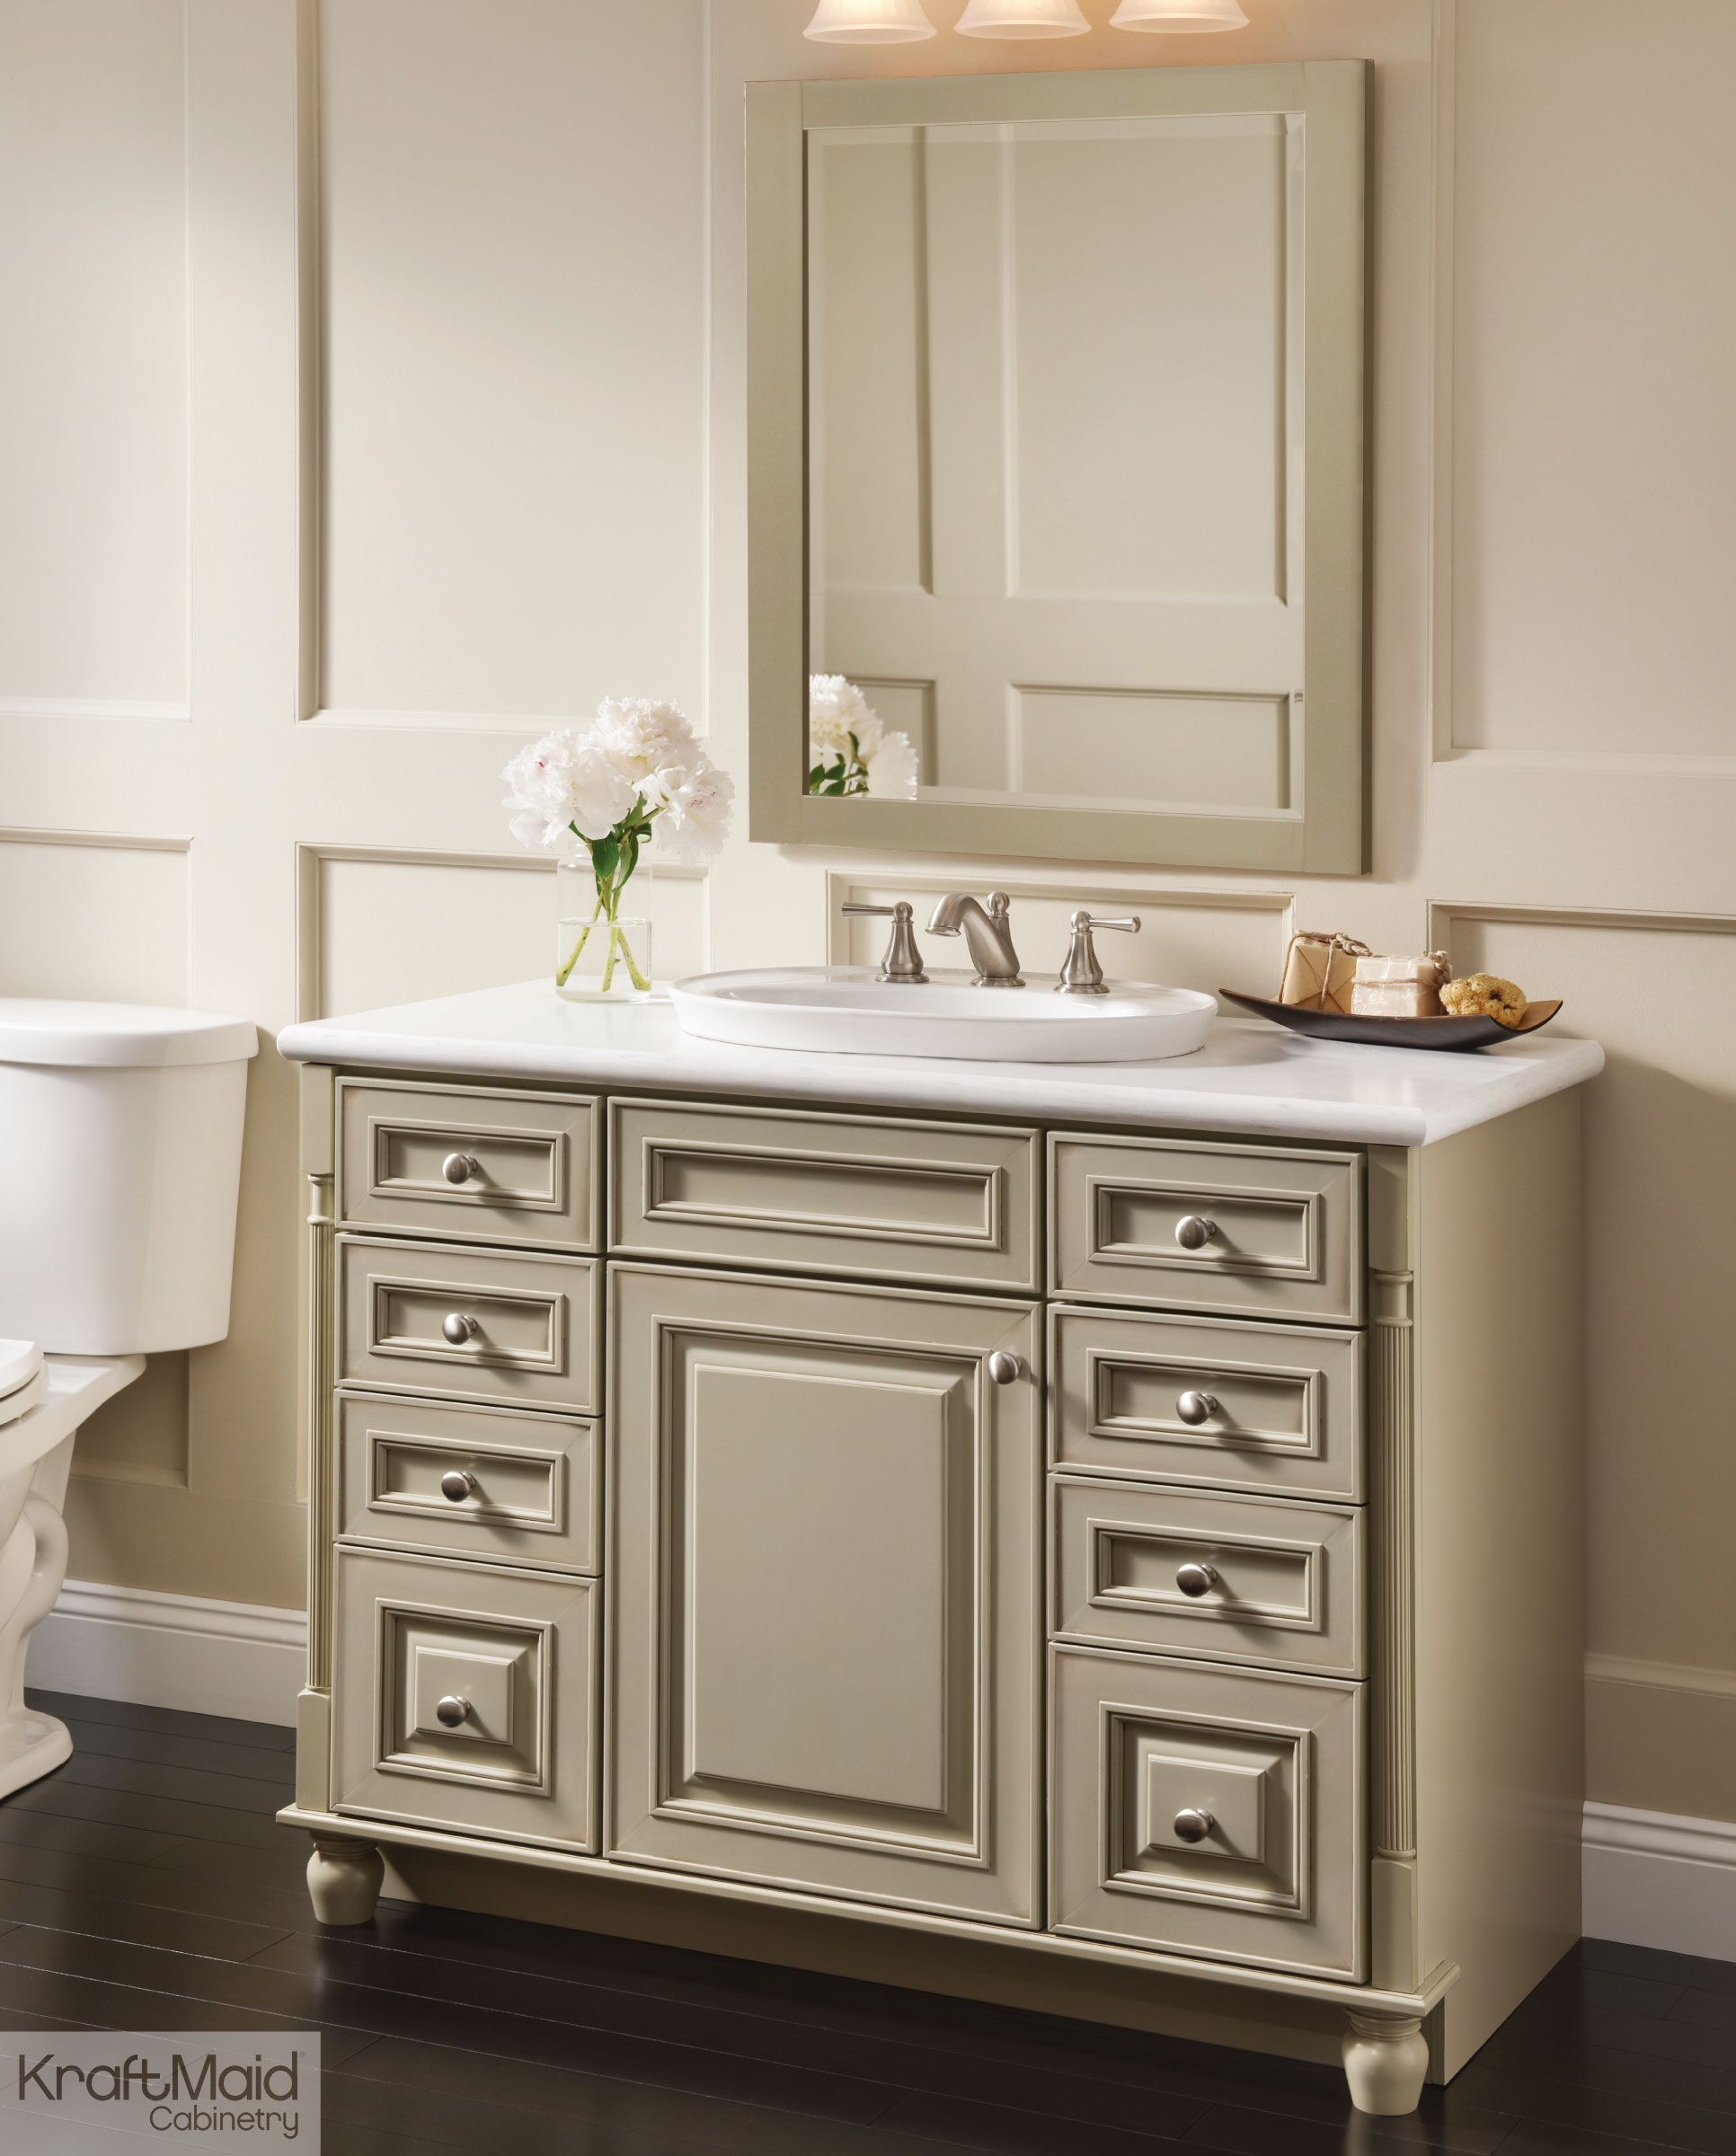 for maid cabinetry cabinets sink pricing home kraft kitchen prices kraftmaid cabinet vanity and result lowes pantry furniture with impressive specifications furnitures interesting door